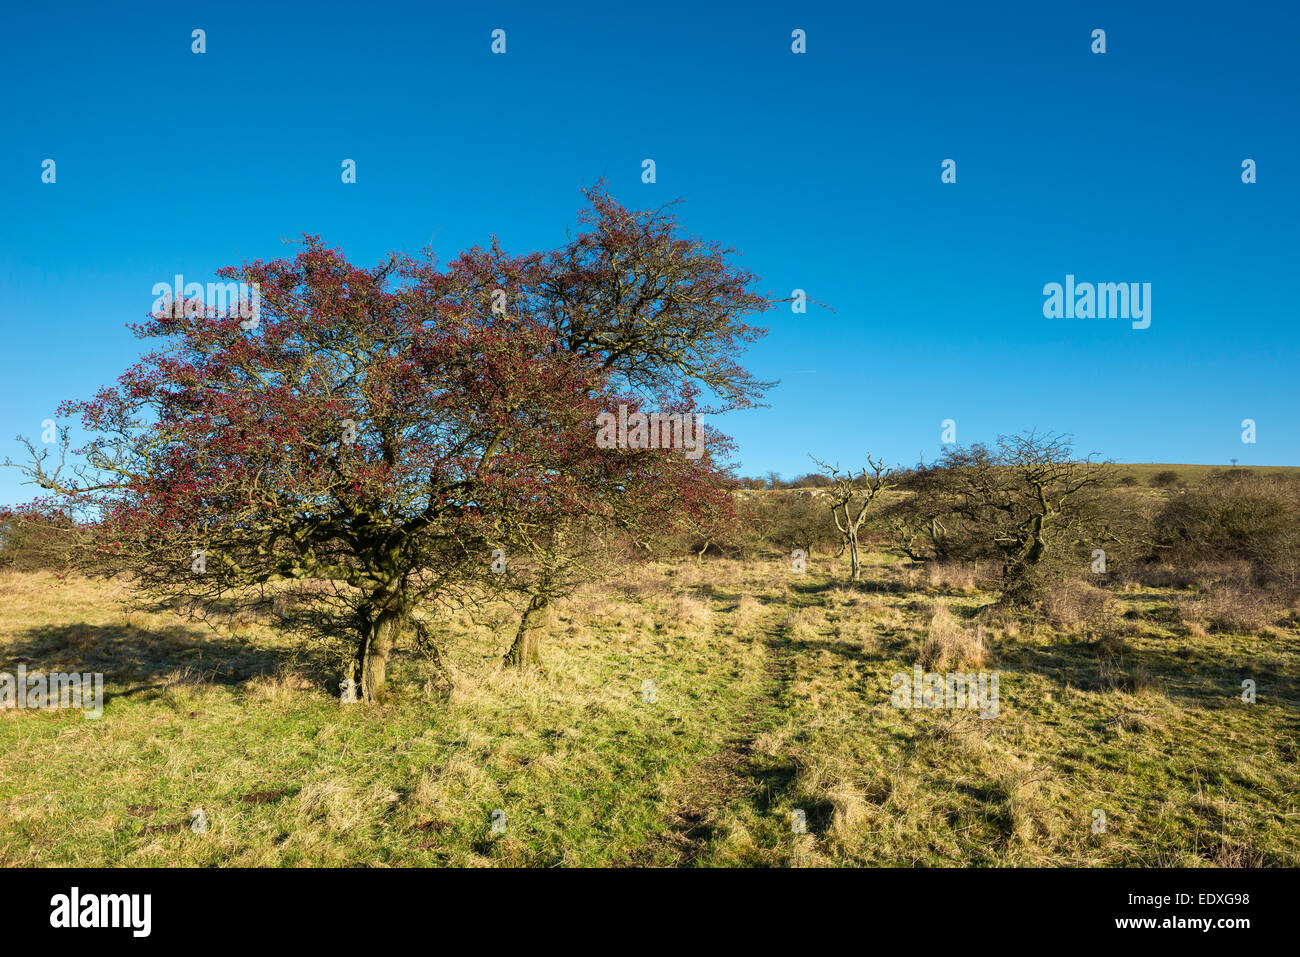 Bright red berries on a Hawthorn tree in a Peak District landscape in Cressbrook dale nature reserve. - Stock Image